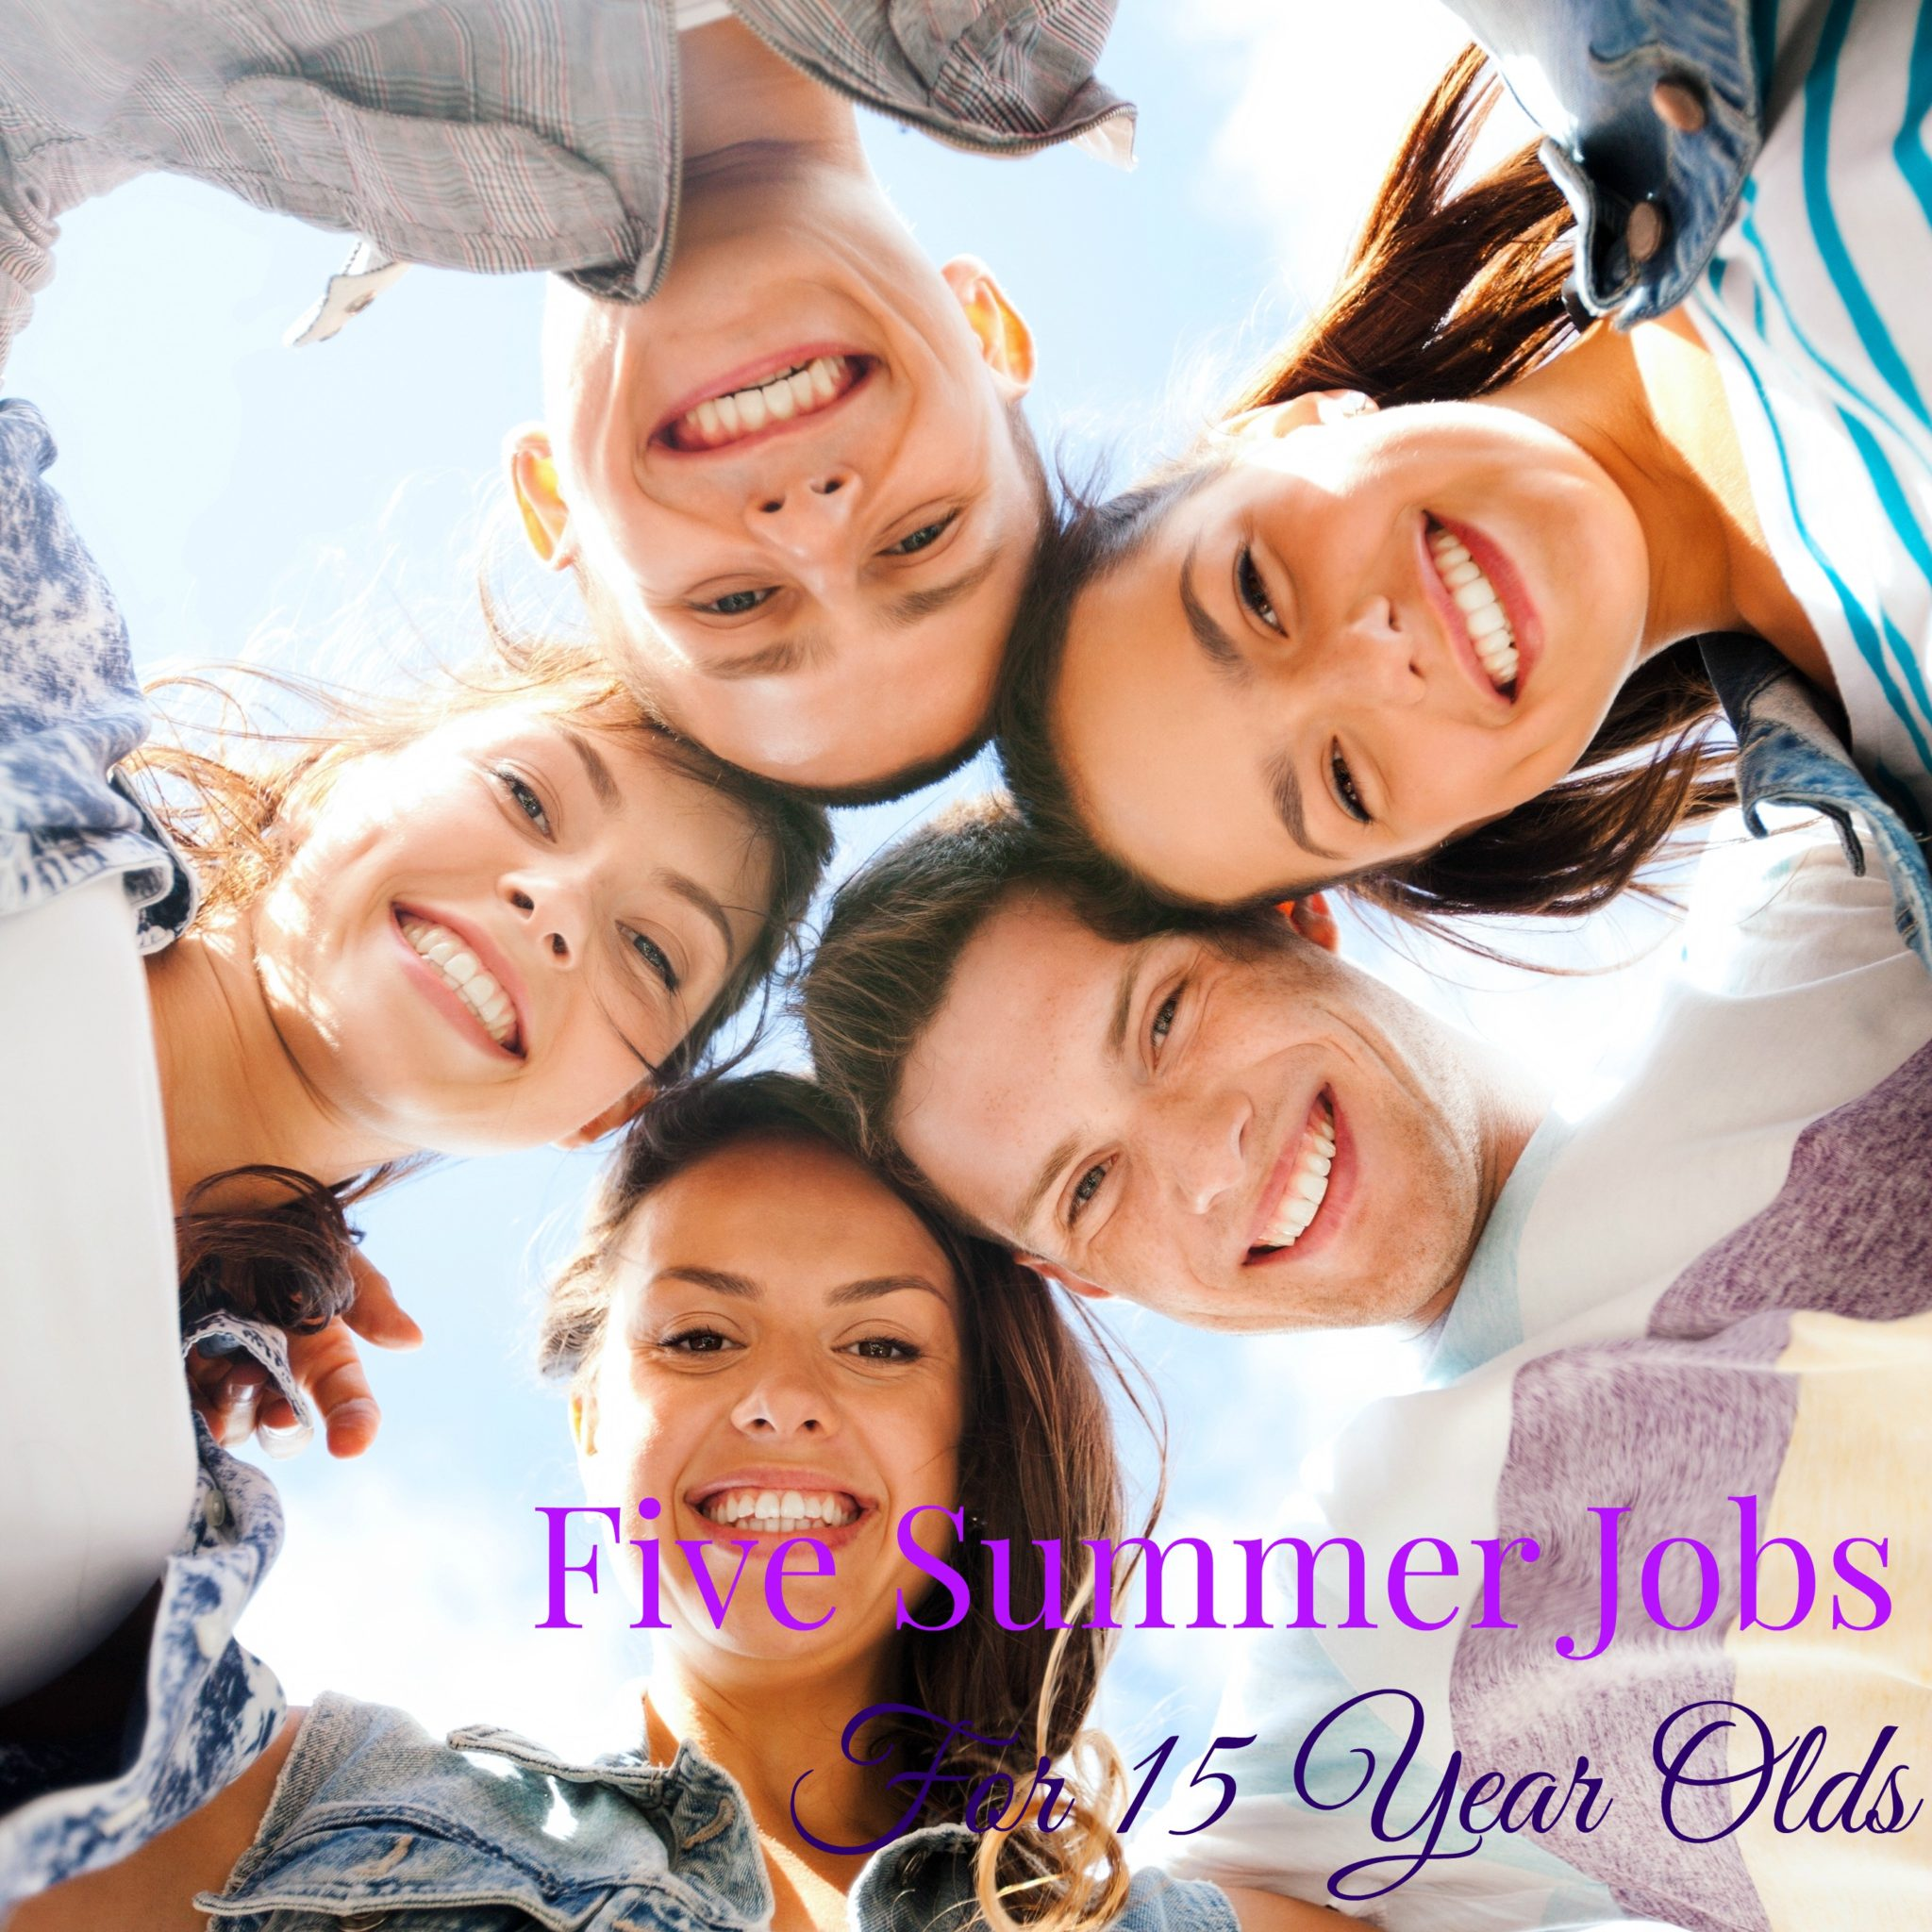 jobs for year olds summer resume format for freshers resume jobs for 15 year olds summer jobs for 15 year olds hire teen five summer jobs